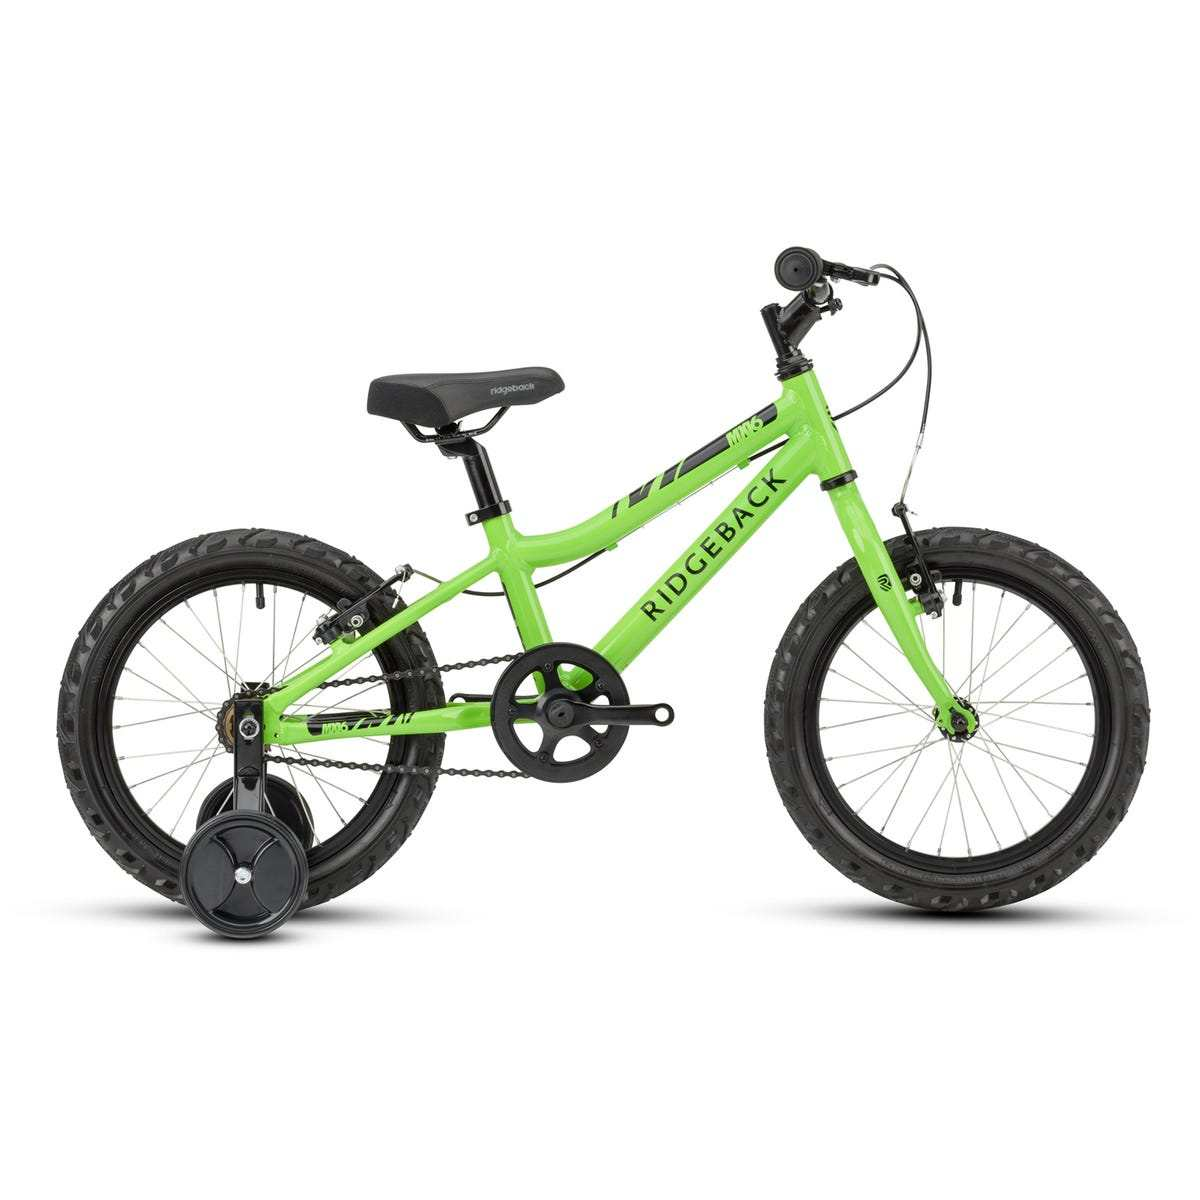 ridgebackmx16-williamscycles-cheltenham